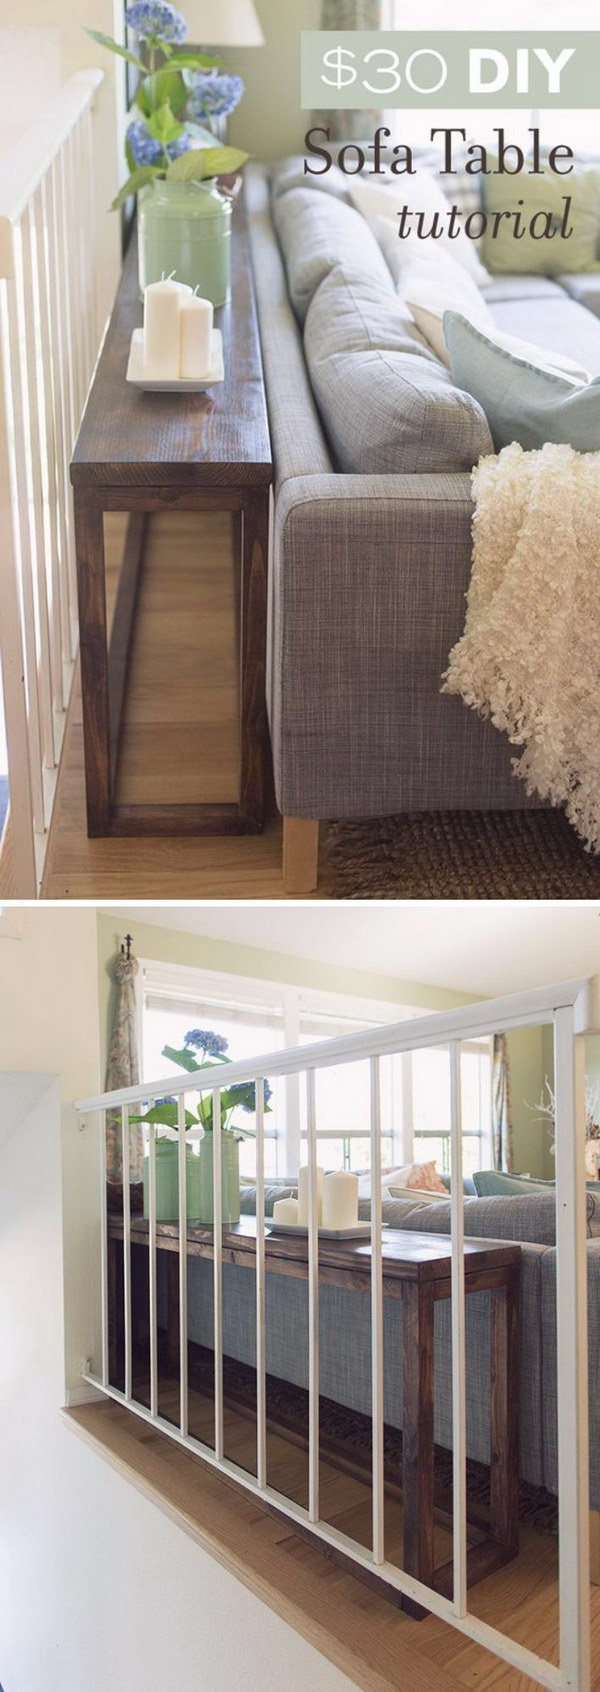 Great Ways To Make Use Of The Space Behind Couch For Extra - Console behind sofa